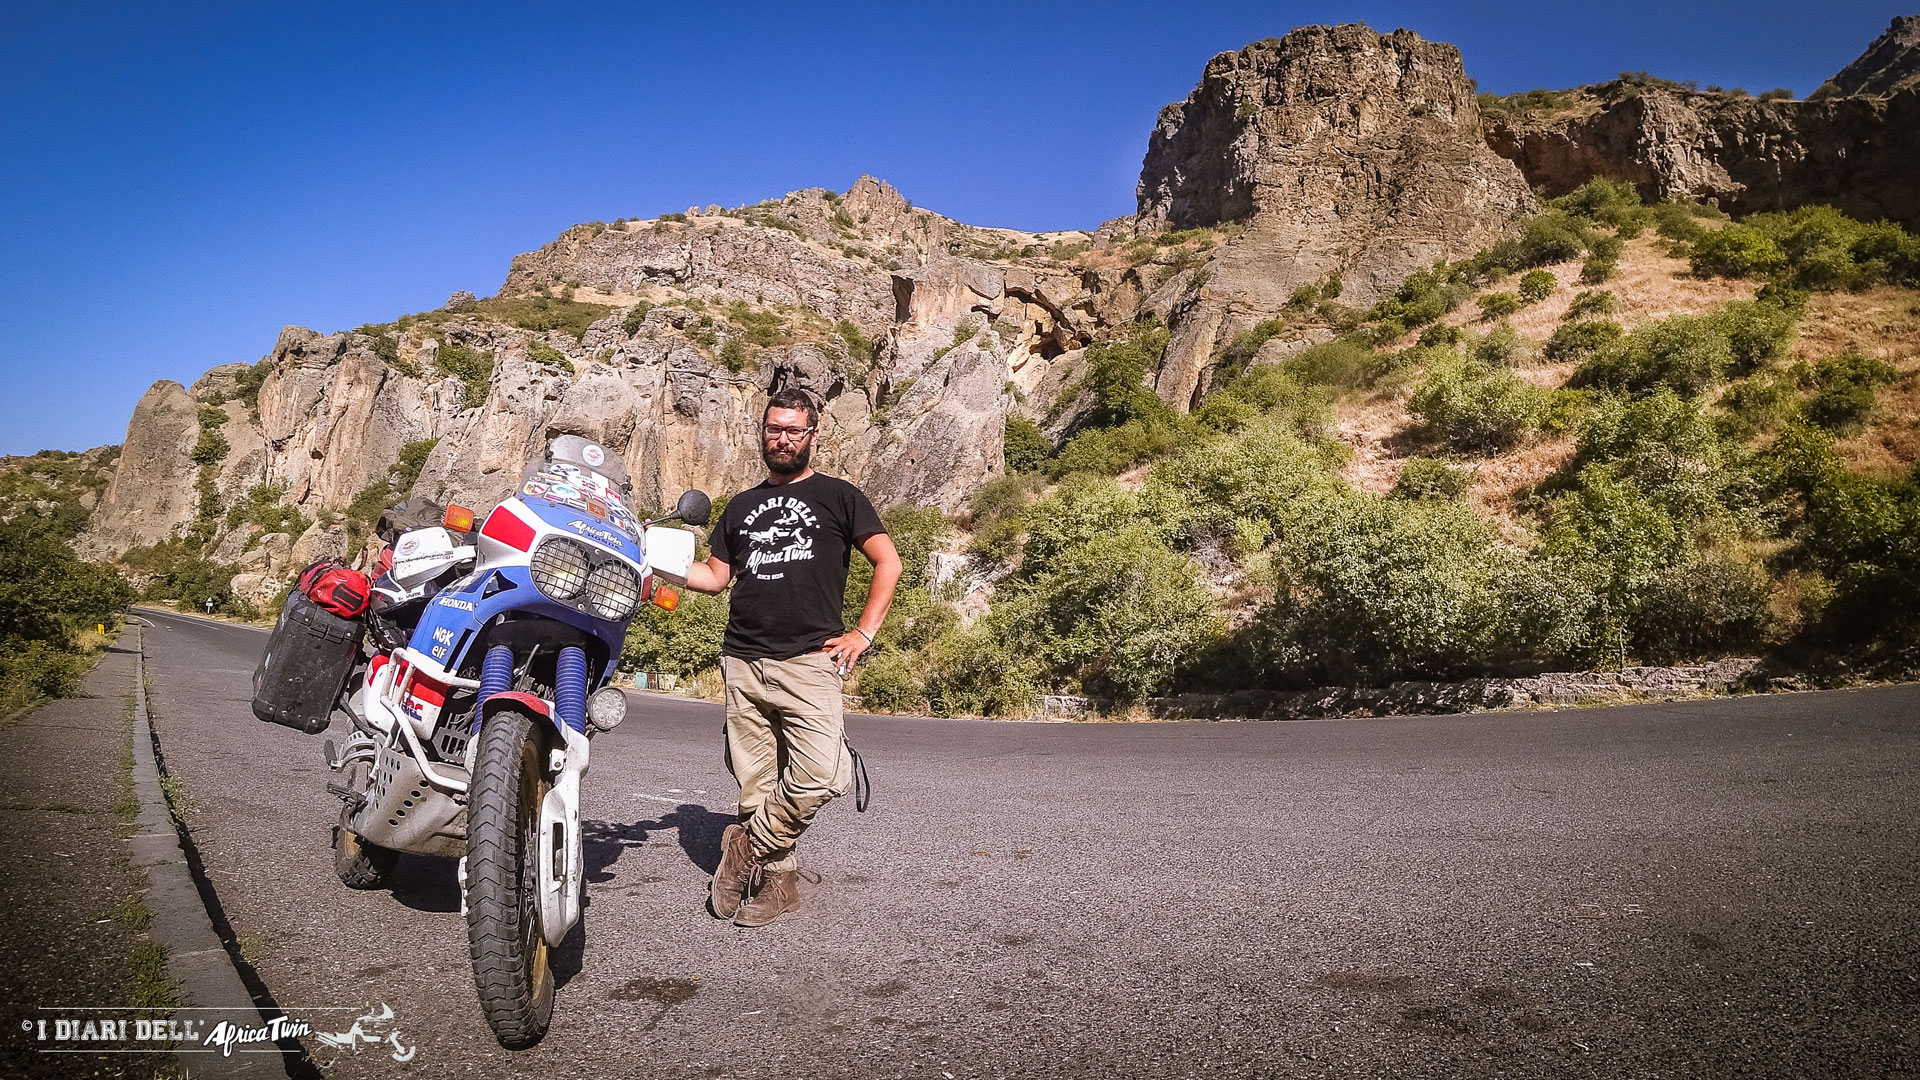 georgia-e-armenia-in-moto-viaggio-africa-twin